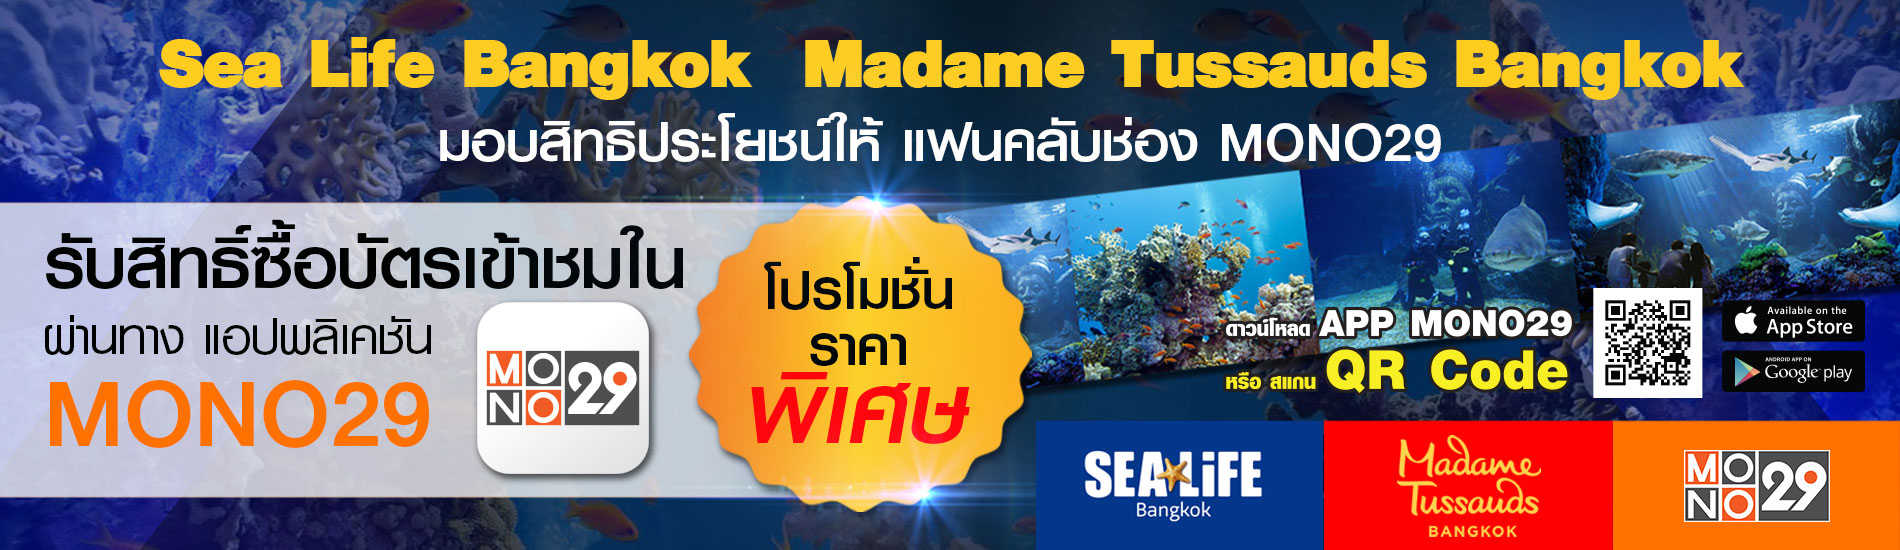 กิจกรรม Sea Life Bangkok Madame Tussauds